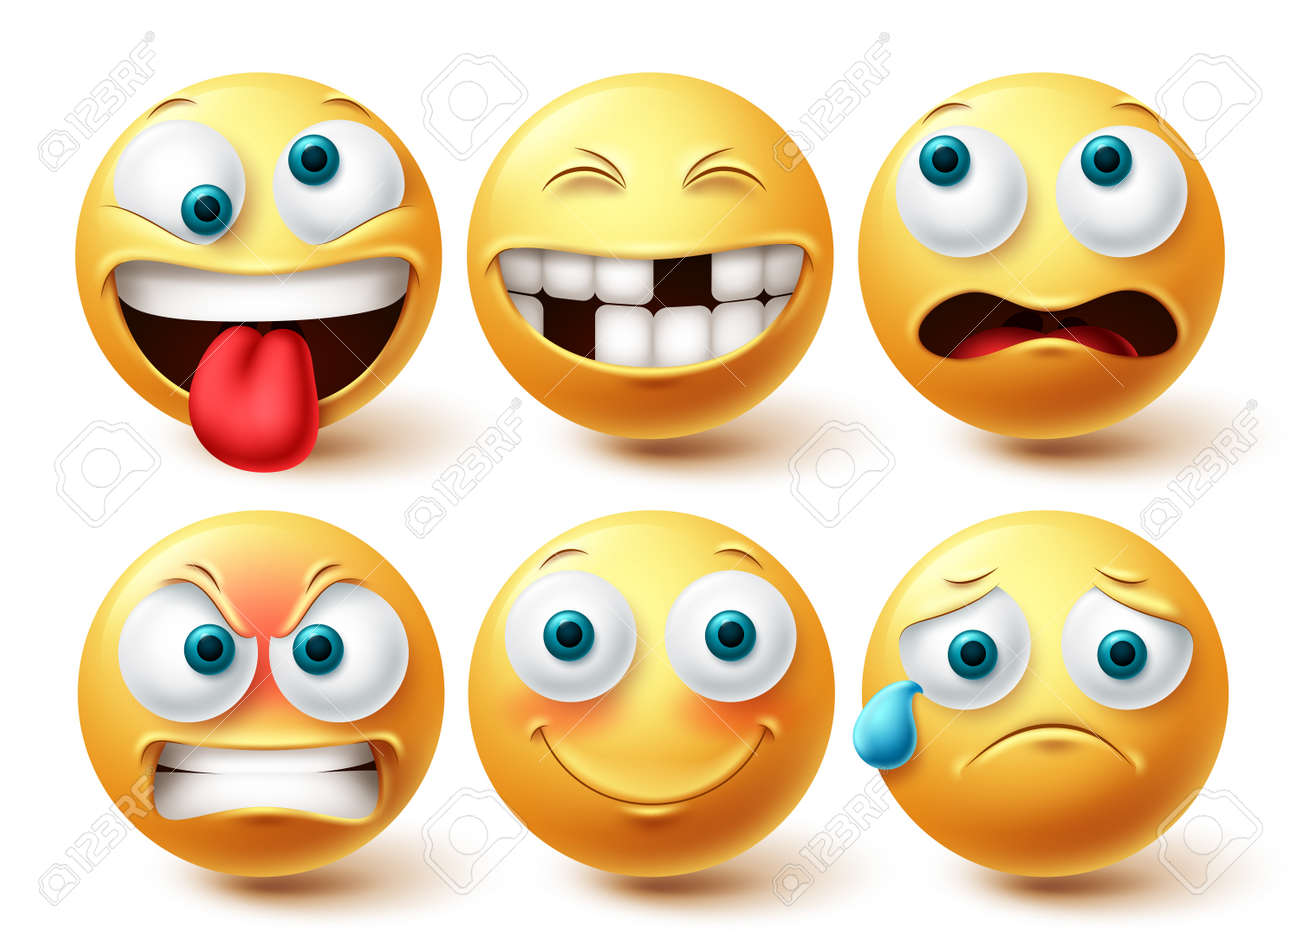 Smiley funny emoji vector set. Smileys emoticon yellow icon collection isolated in white background for graphic elements design. Vector illustration - 171747805